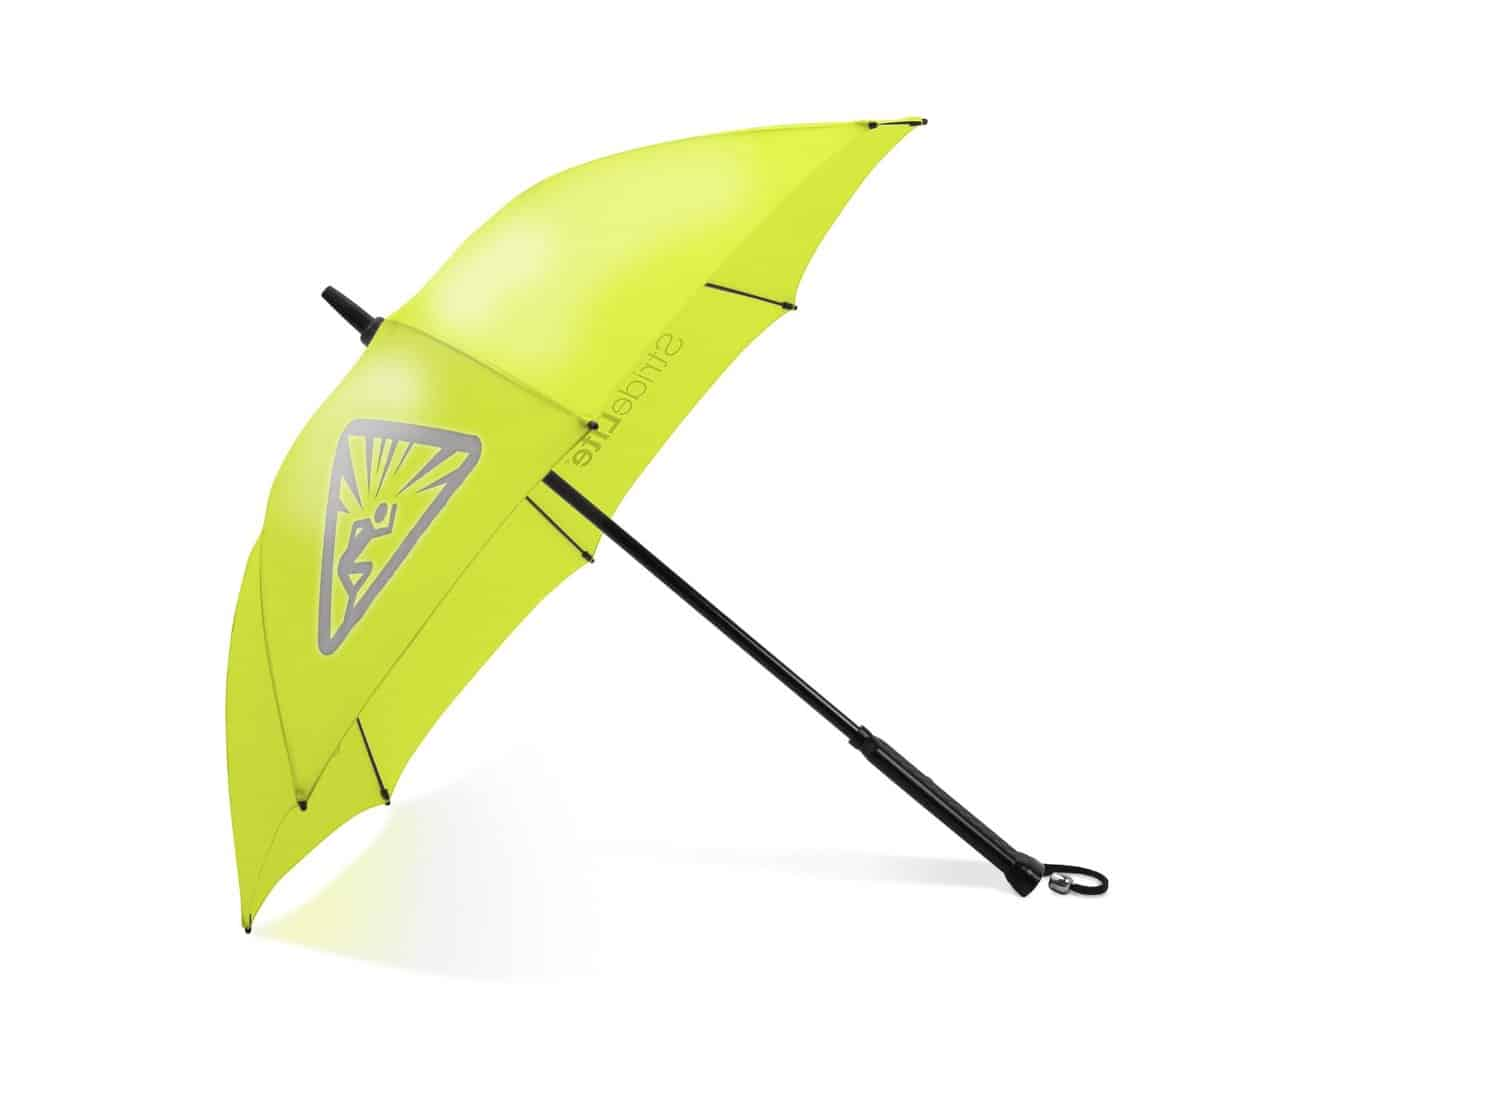 StrideLite Safe Walking Umbrella Neon Yellow to Attract More Attention